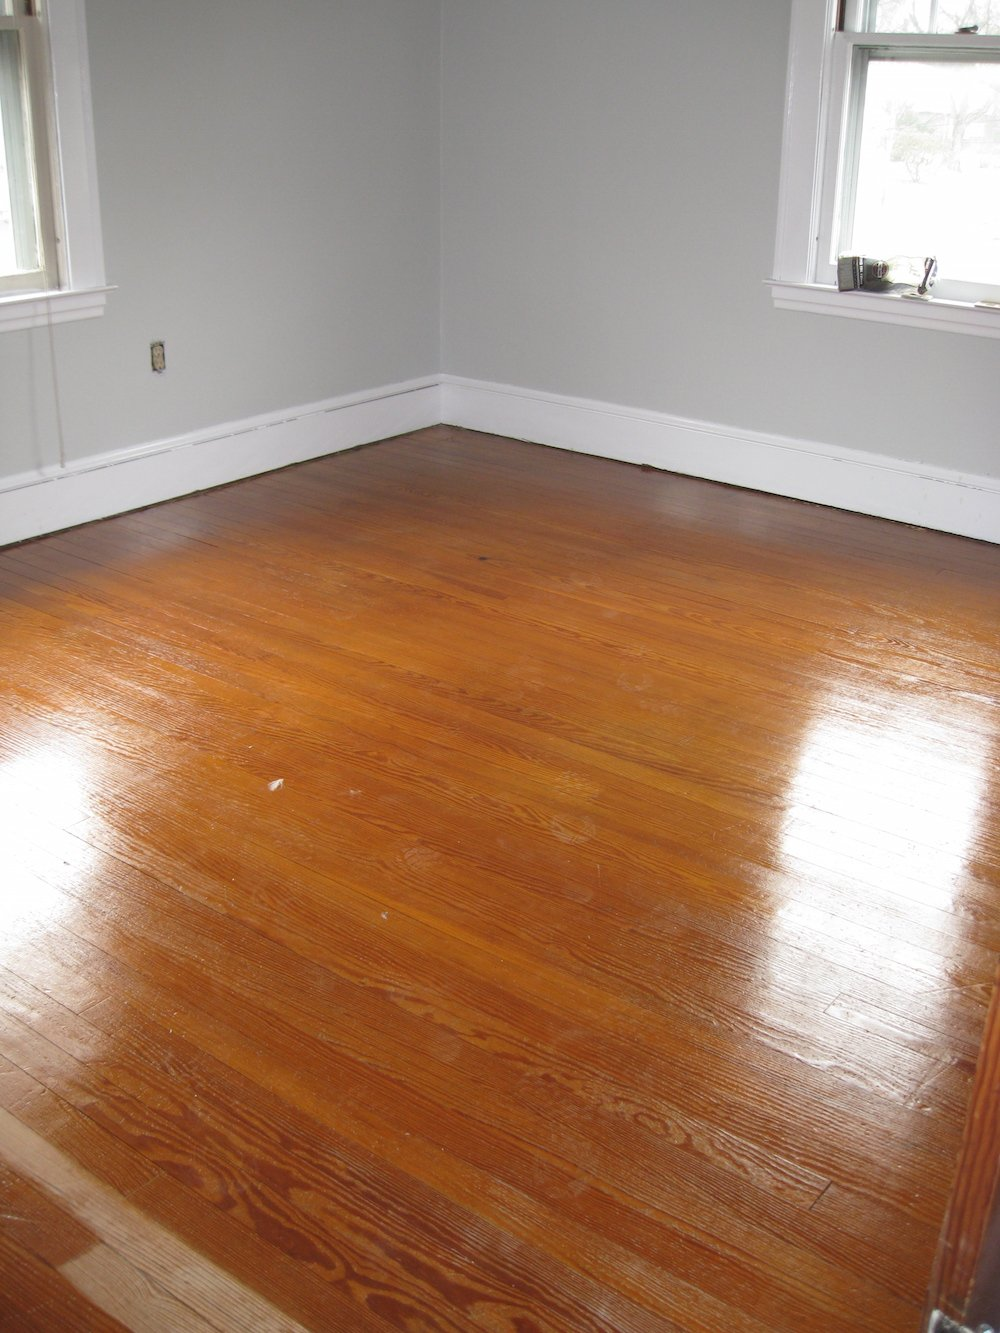 Restoring Wood Floor Wood Idea Staining Wood Floors With Dark Color